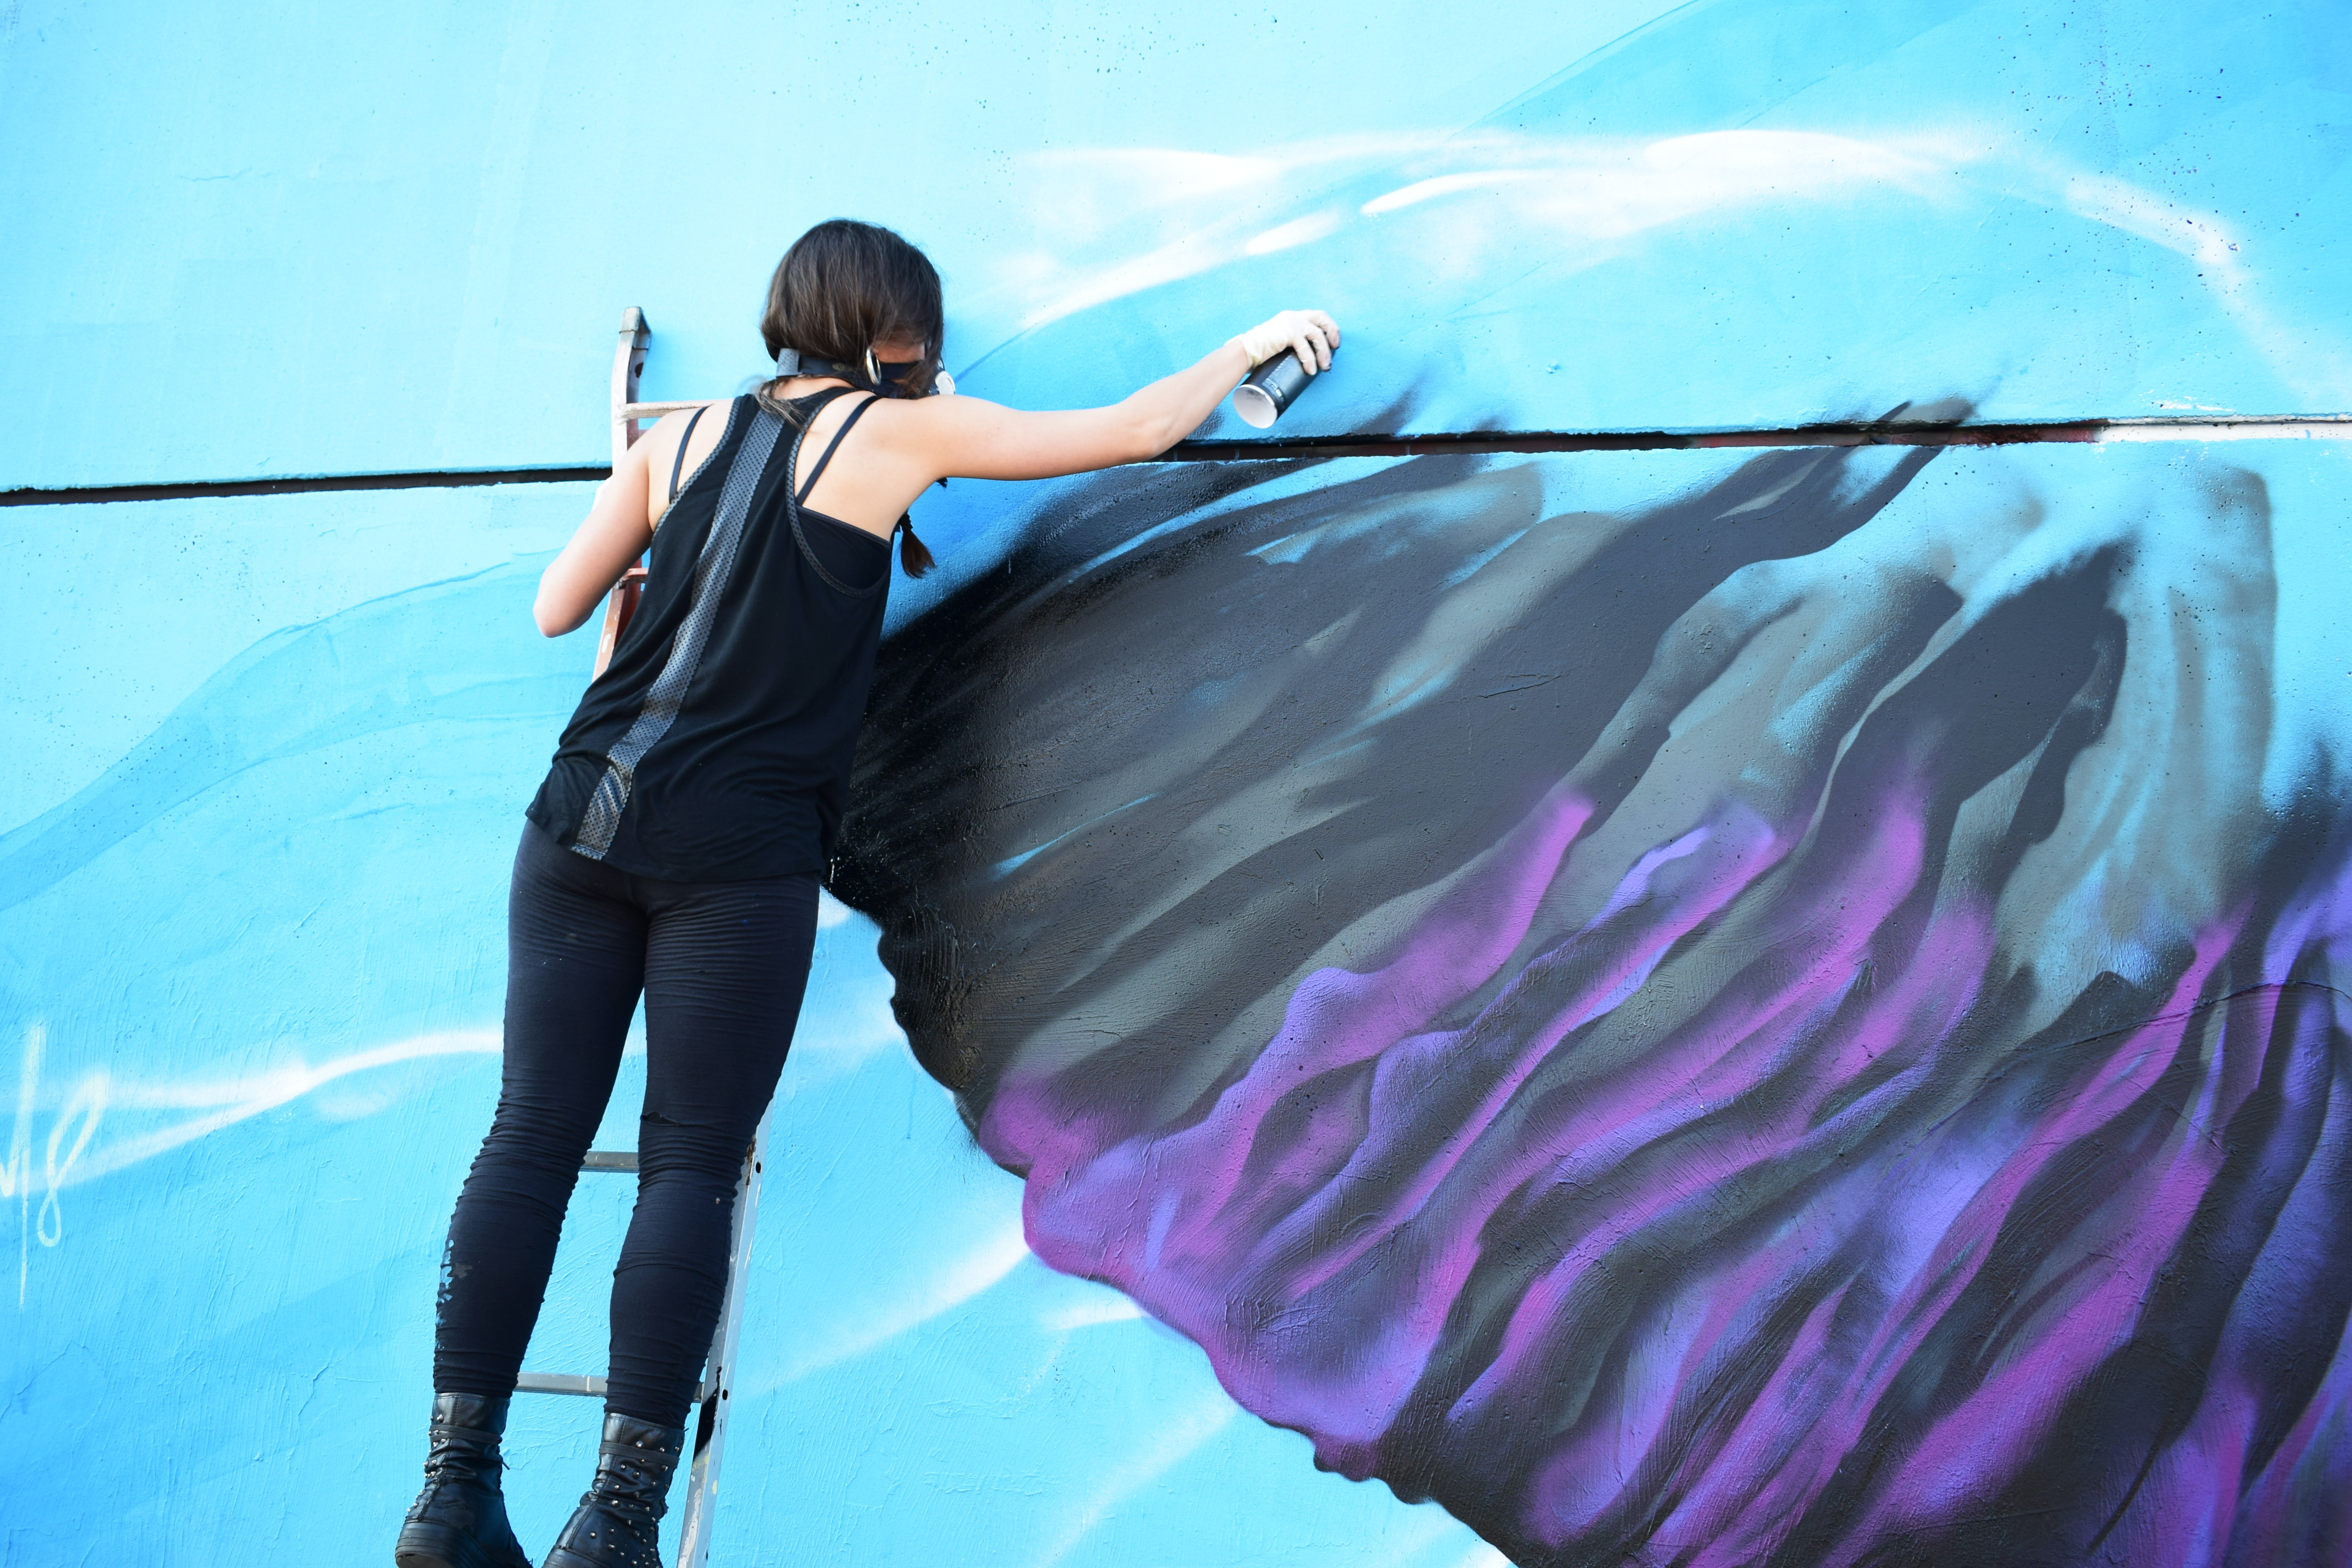 A woman making art with spray paint.